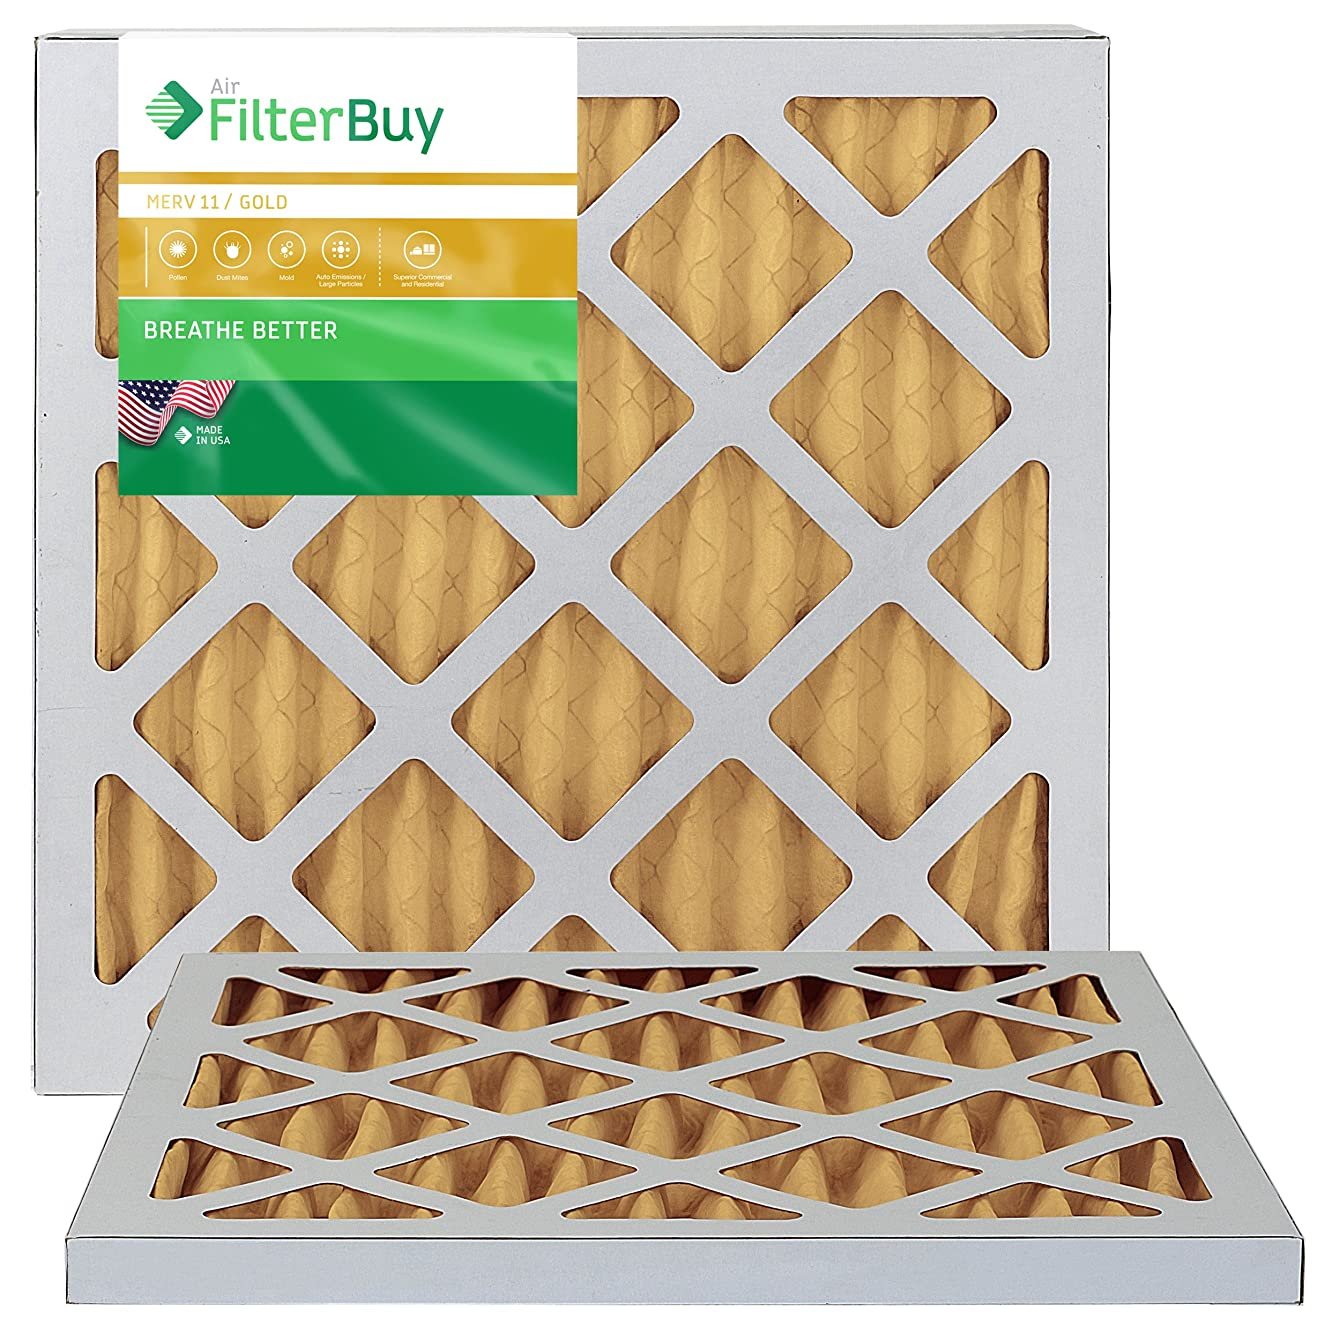 FilterBuy 12x18x1 MERV 11 Pleated AC Furnace Air Filter, (Pack of 2 Filters), 12x18x1 – Gold